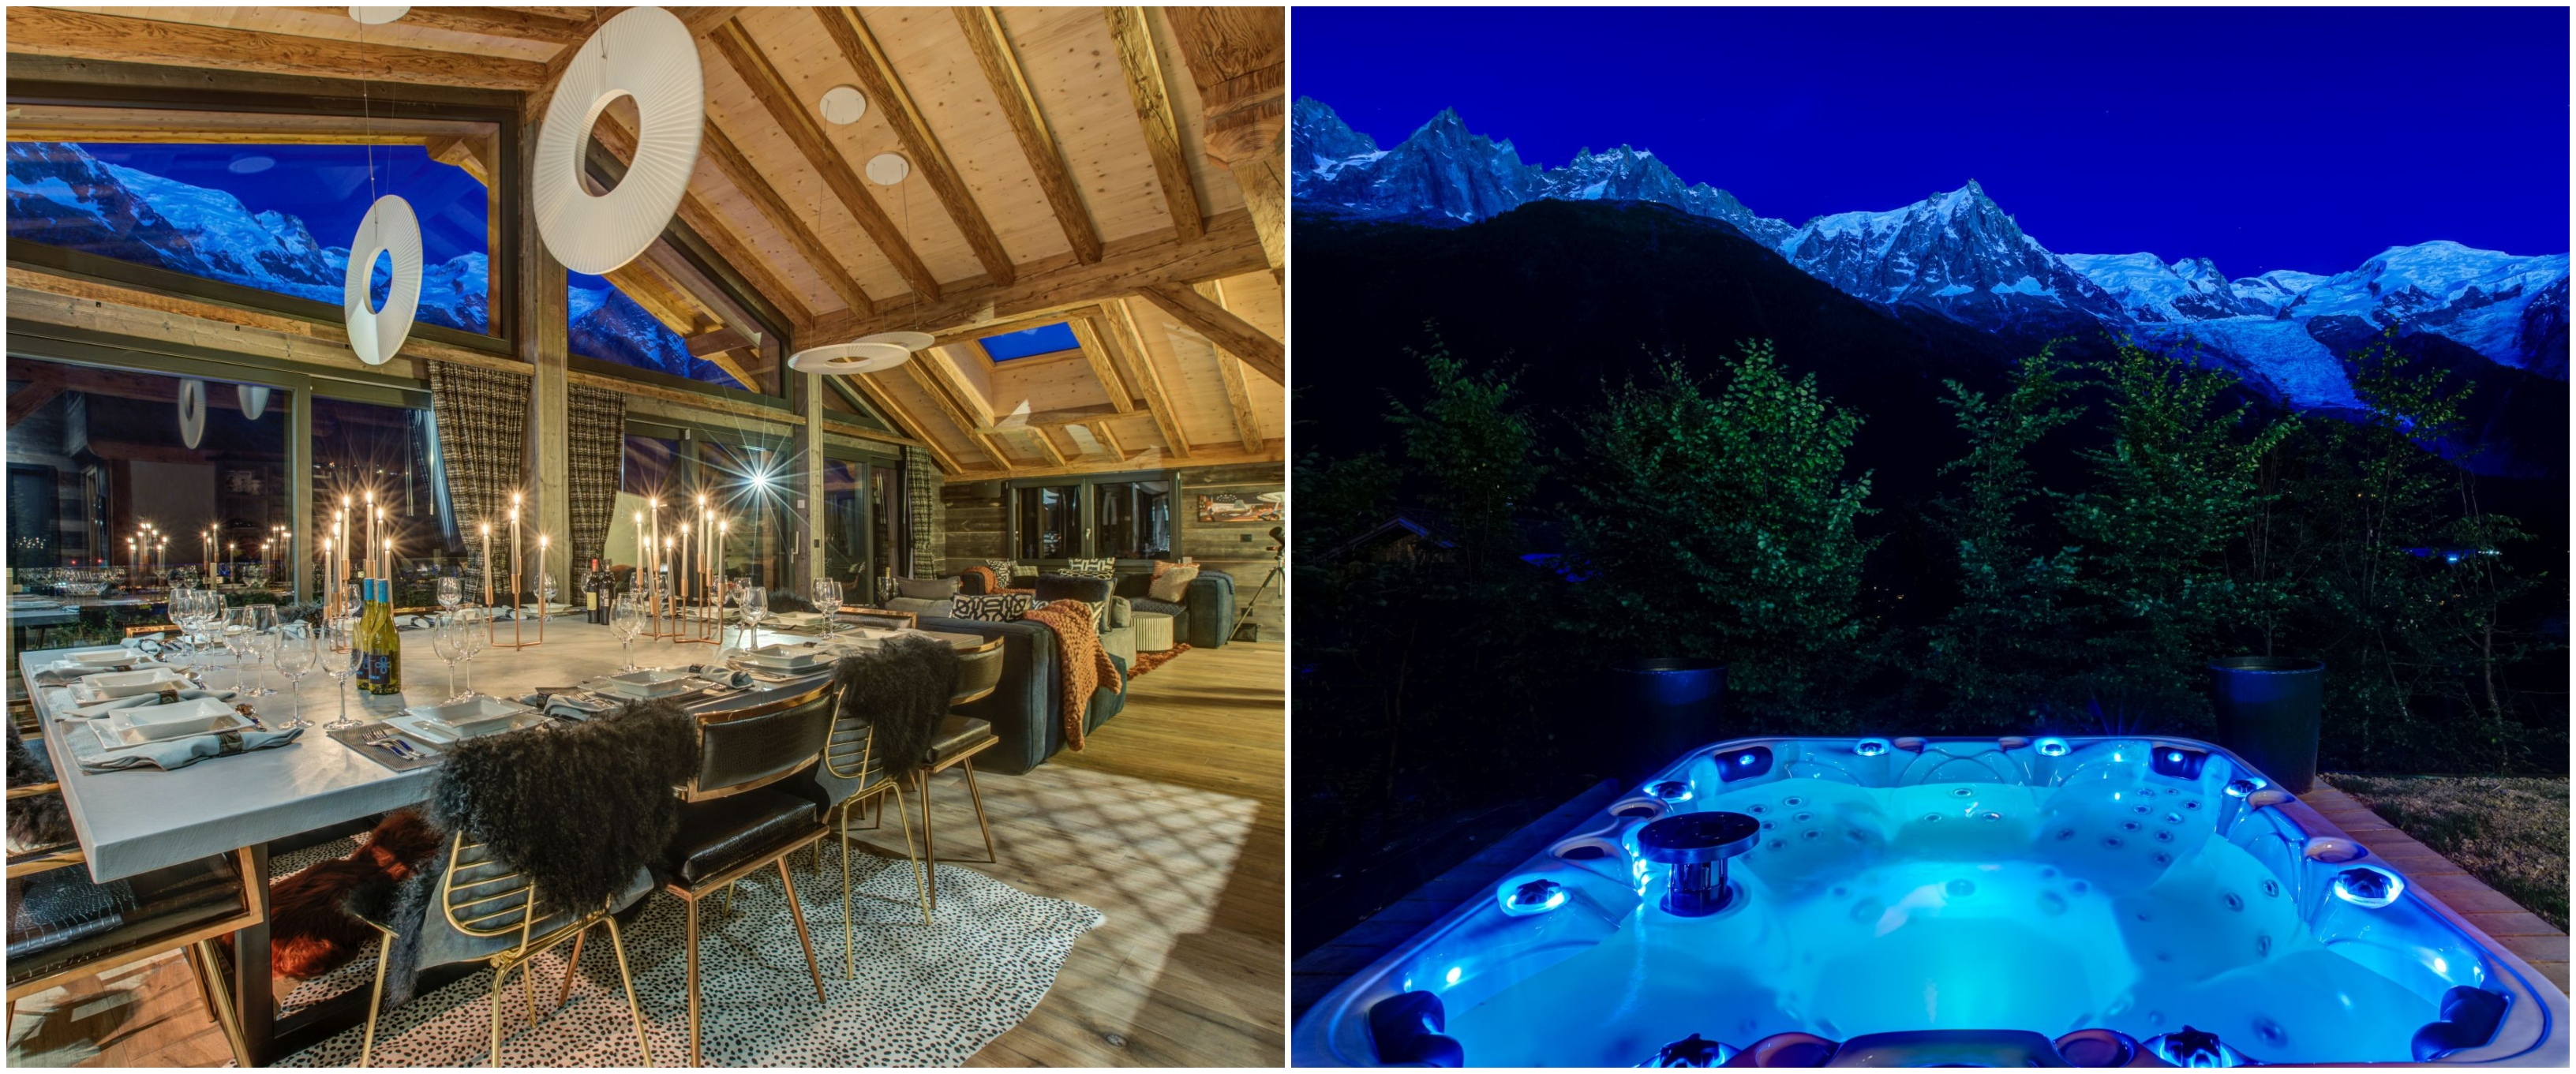 Hot tub and dining room at Chalet Rock and Roll, Chamonix